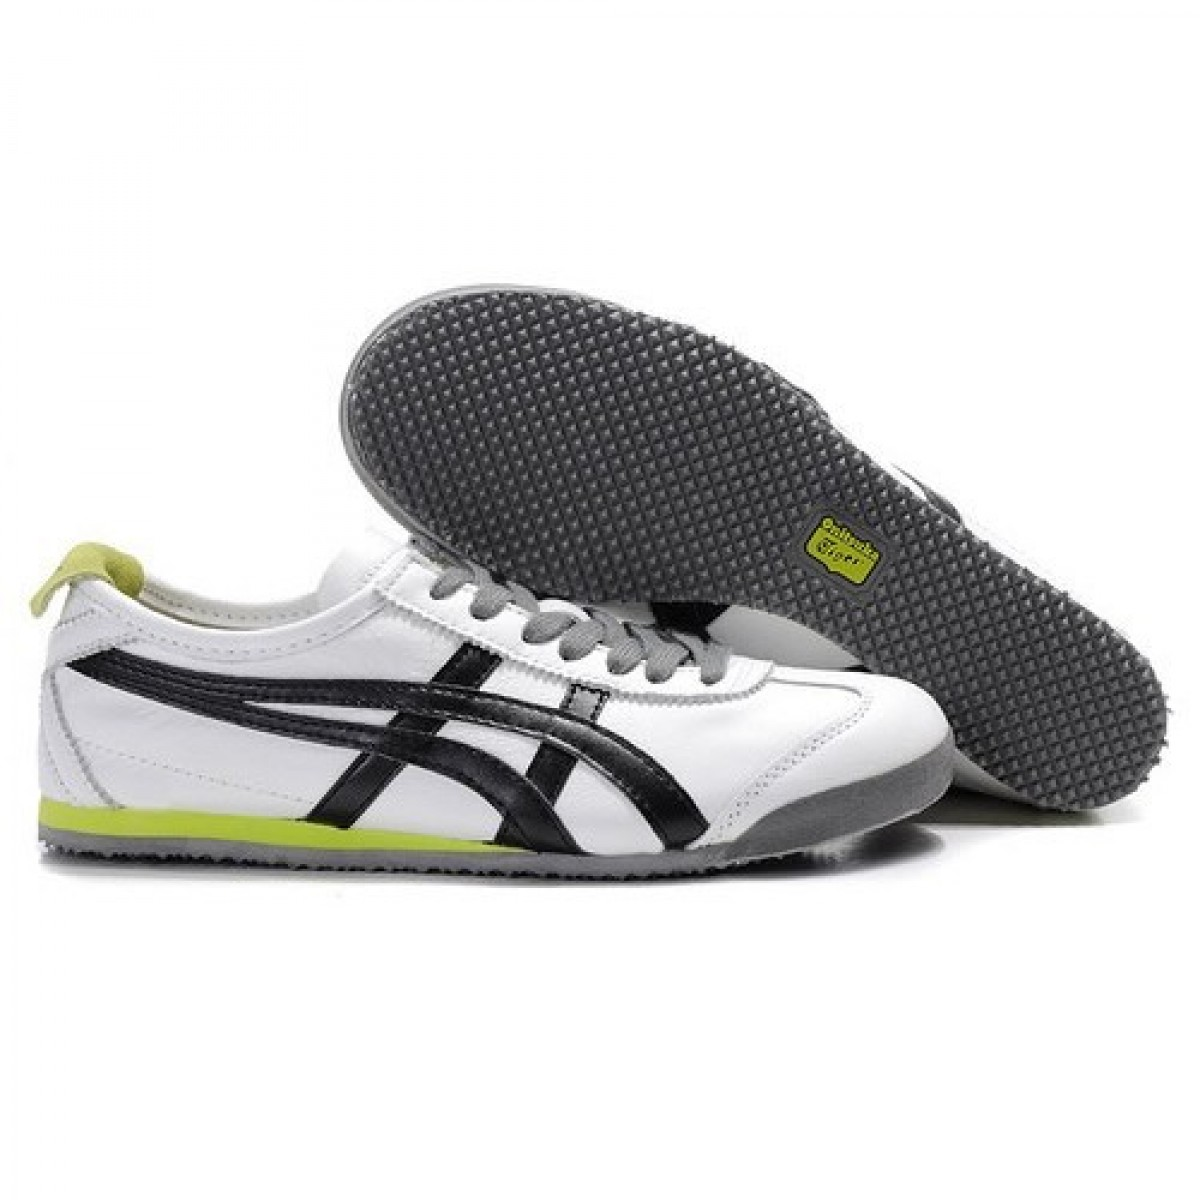 JI6345 Soldes Asics Onitsuka Tiger Mexico 66 Chaussures Homme Blanc Noir Vert 51689264 Pas Cher